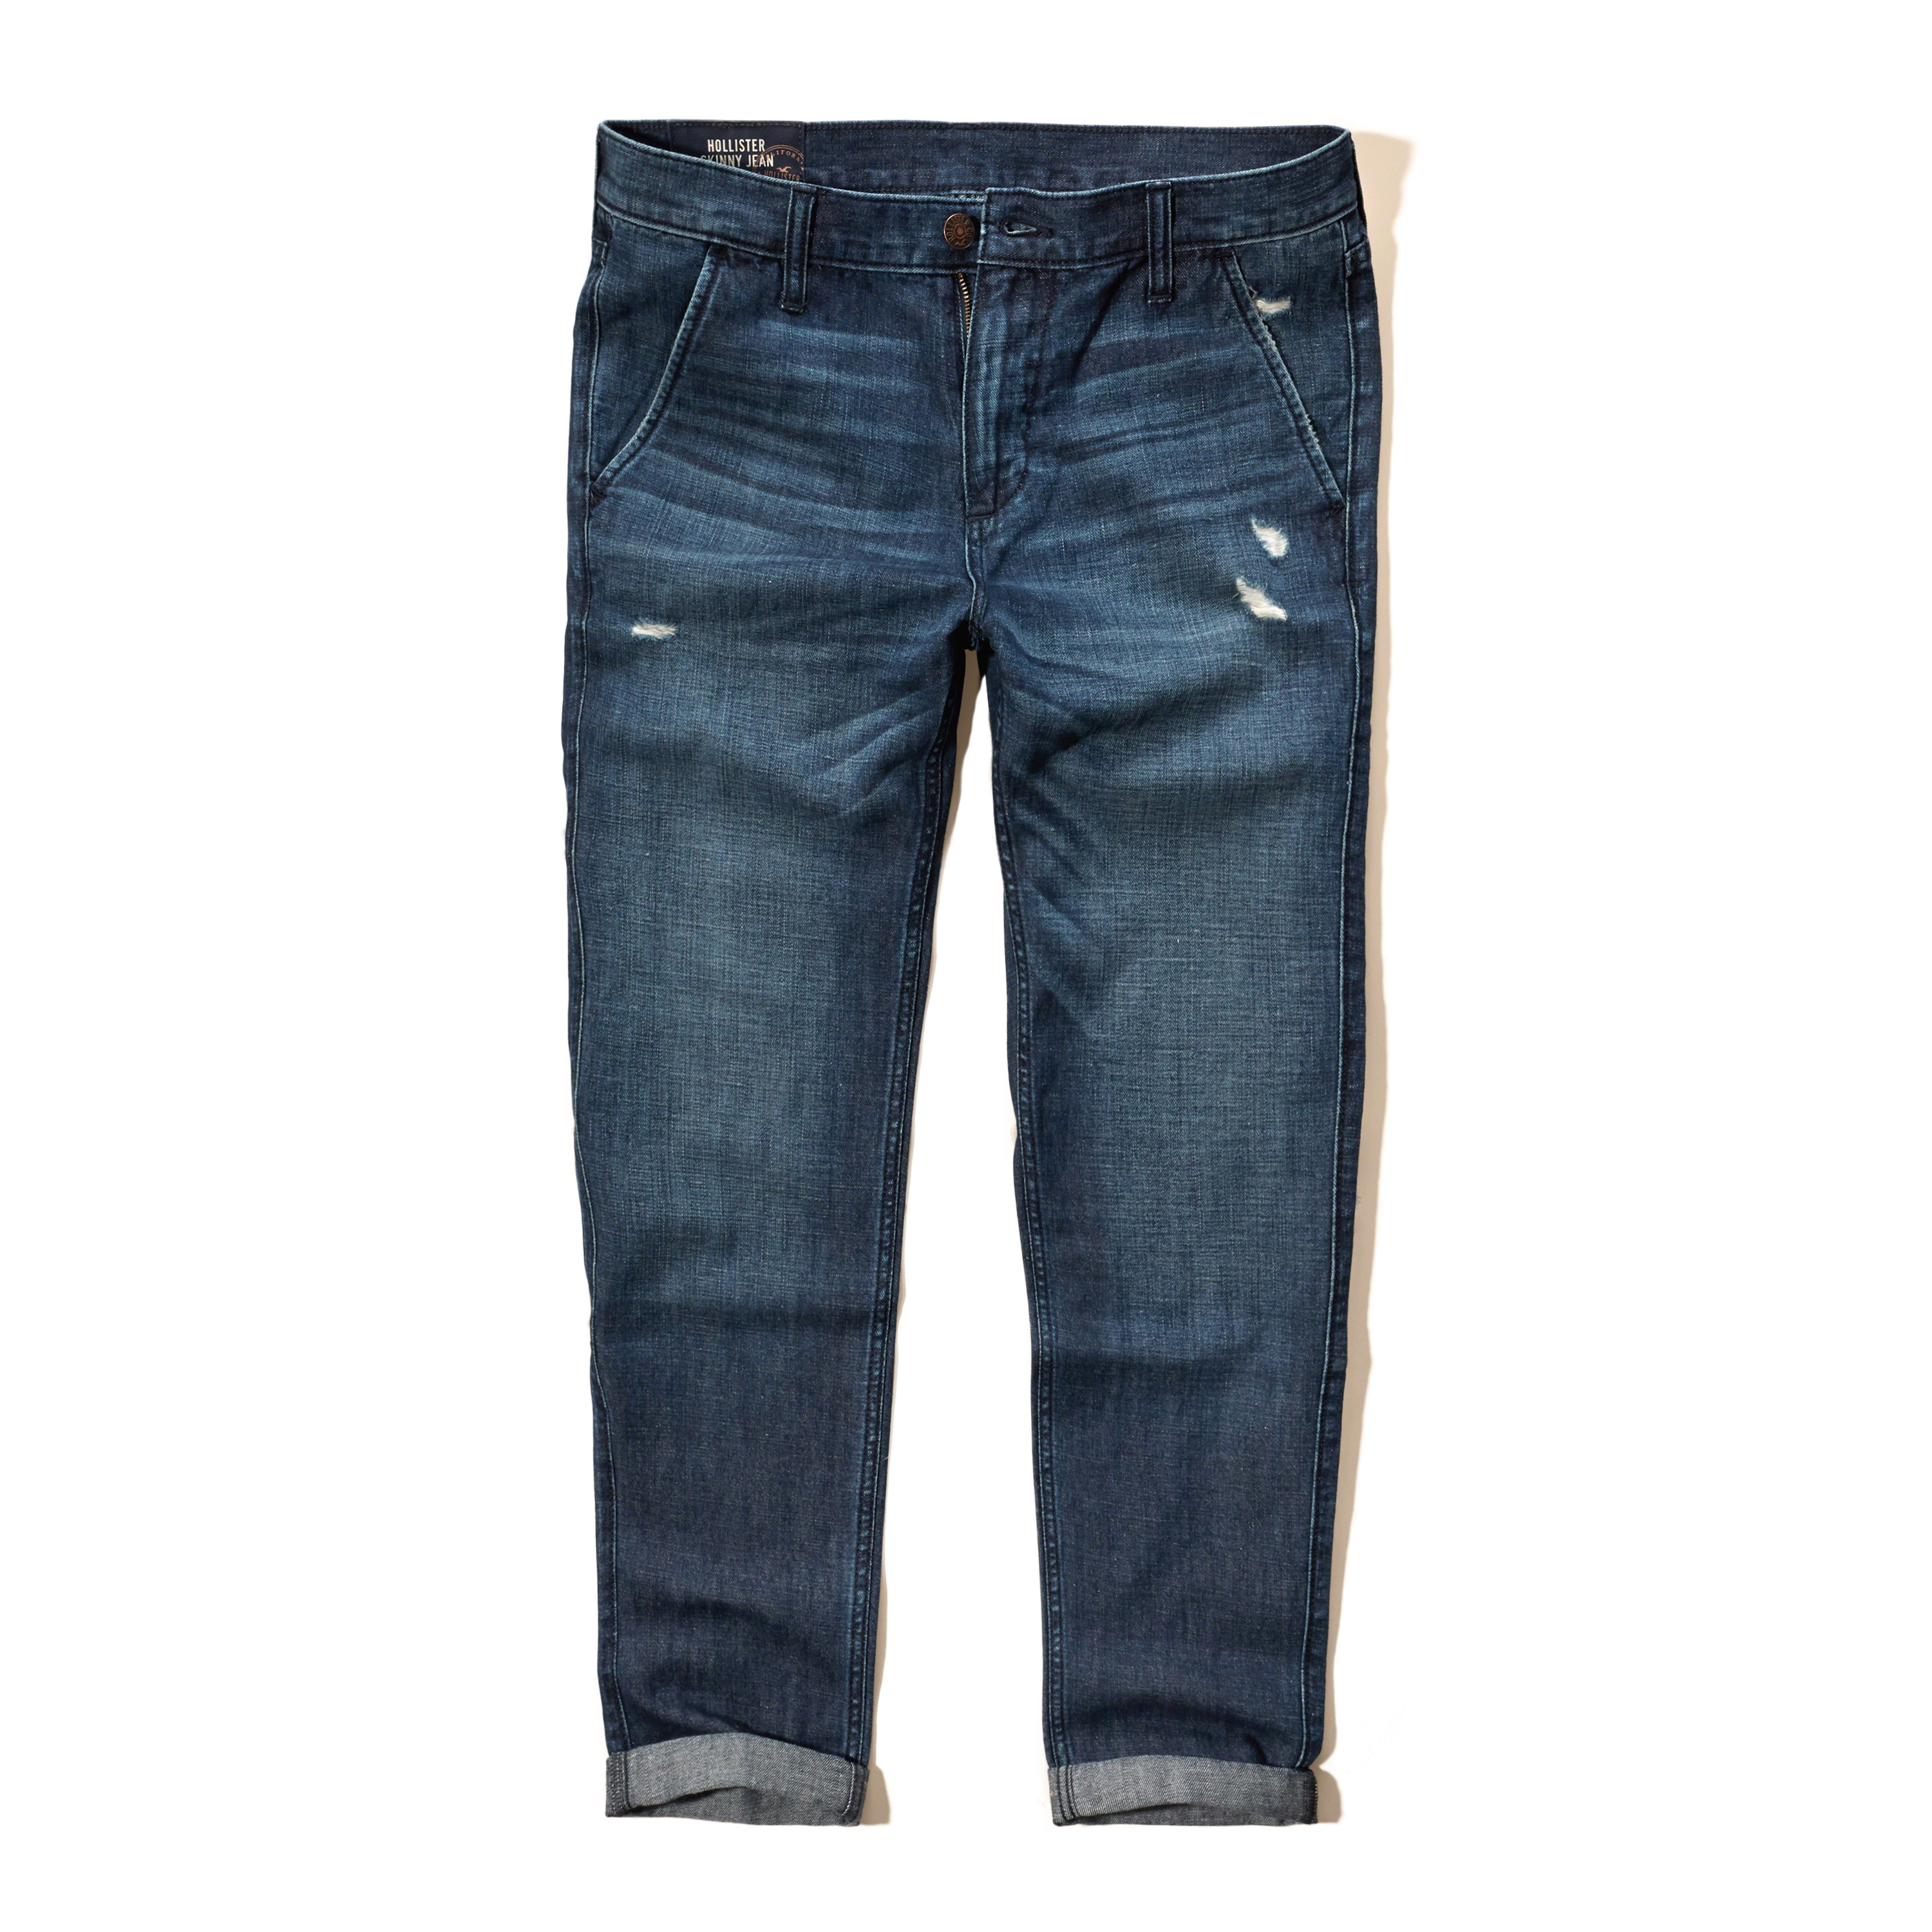 hollister dark jeans for men - photo #34